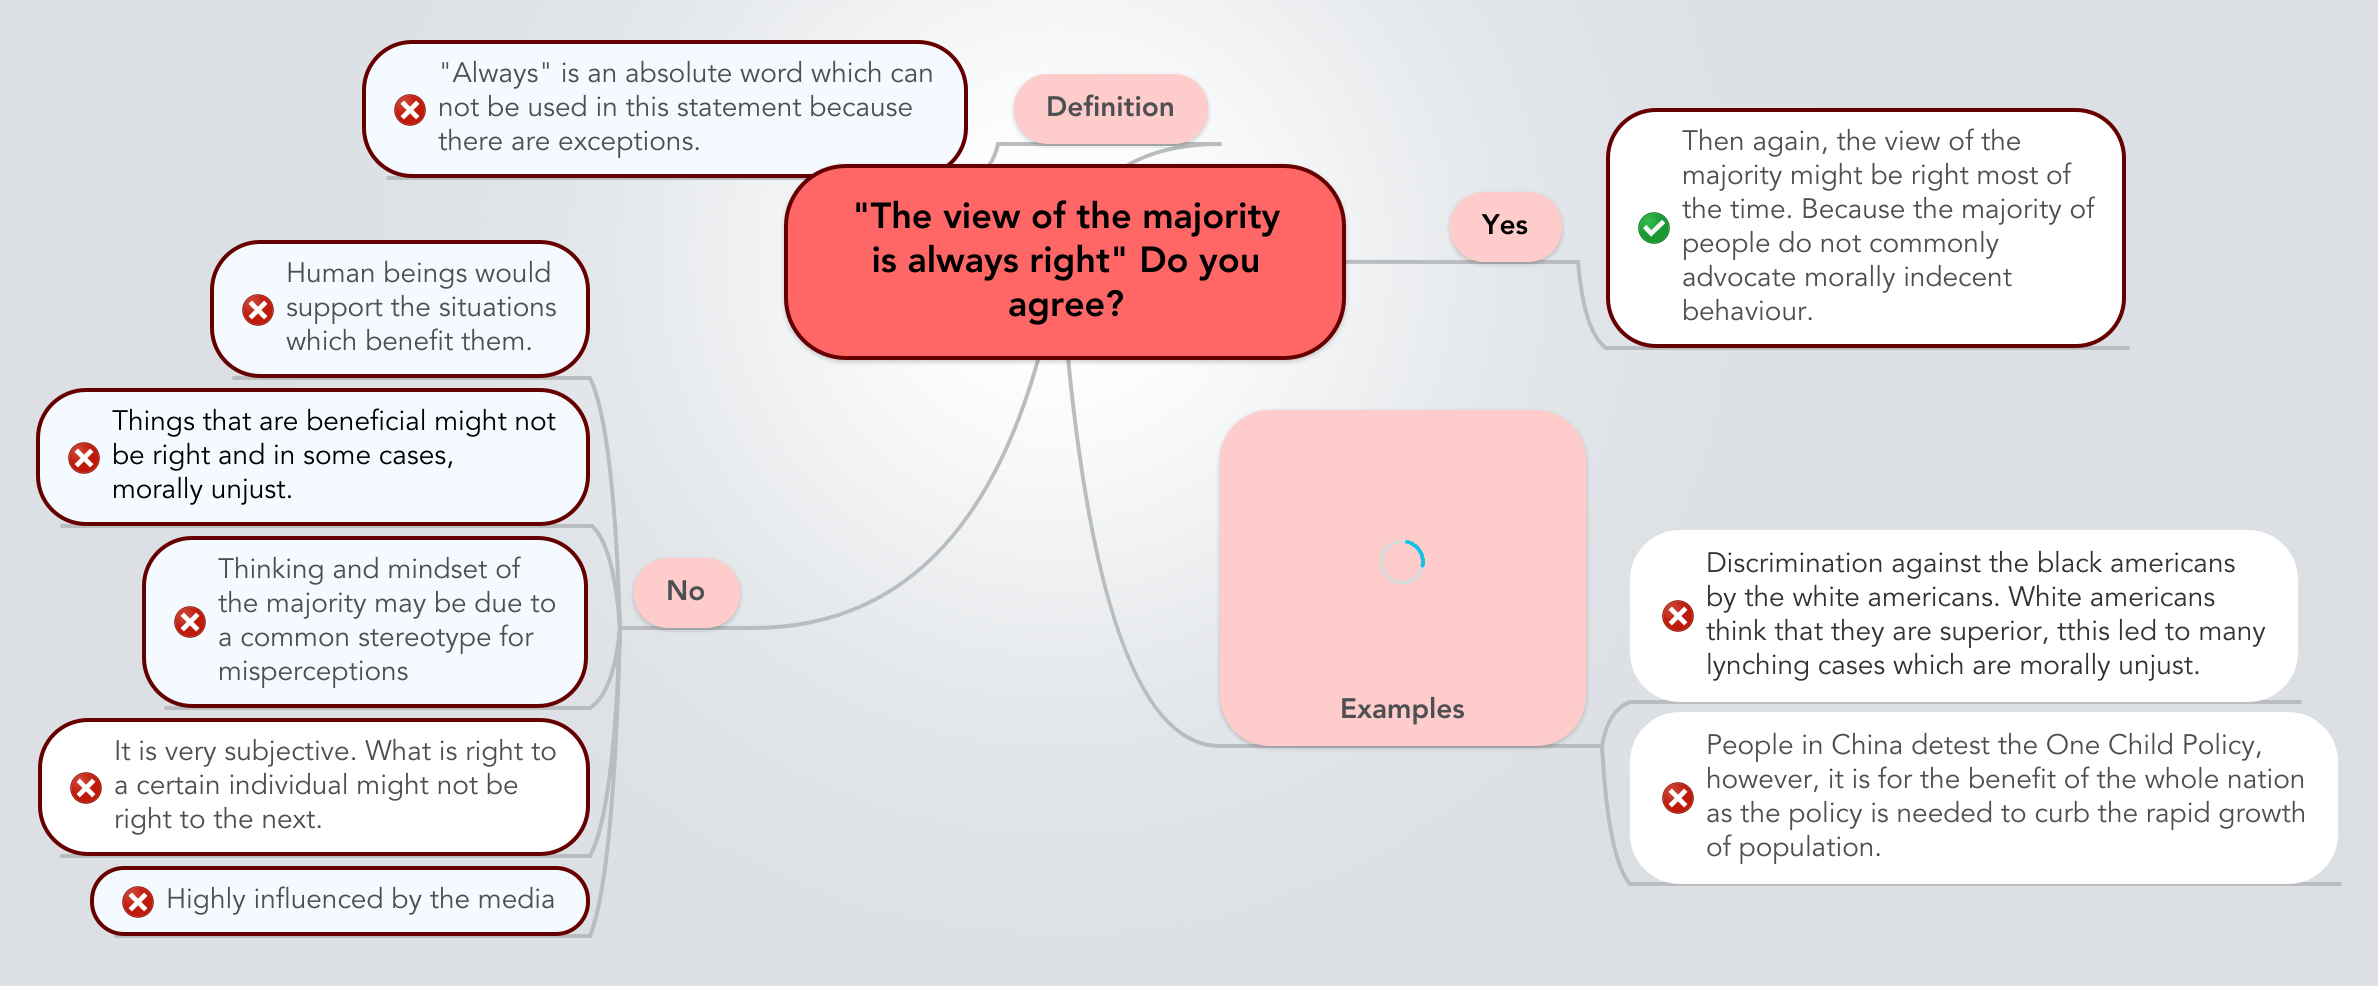 The view of the majority is always right essay